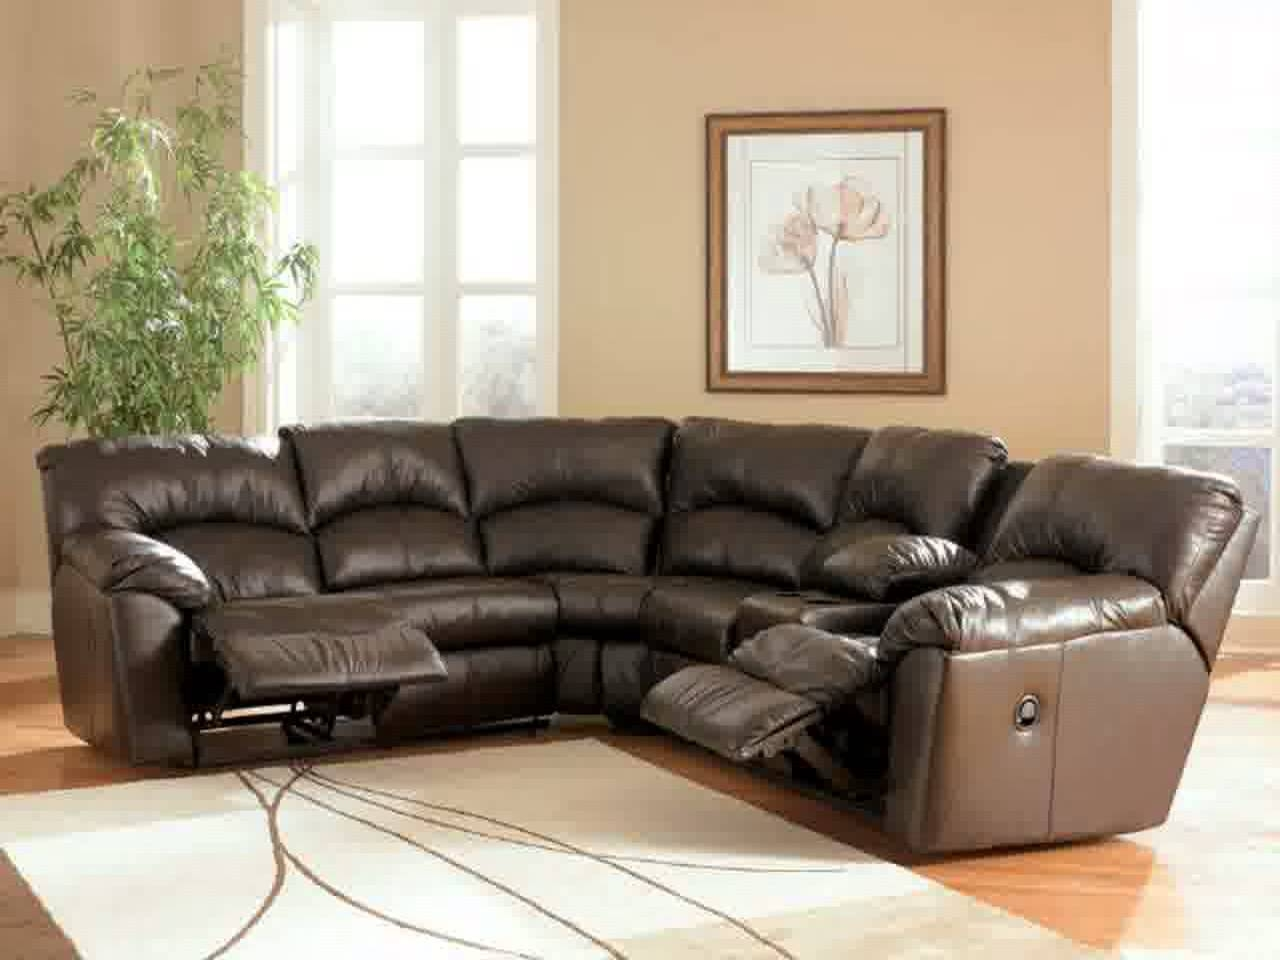 Popular 45 Degree Sectional Sofa 45 On Sofa Sleeper Sectionals Intended For 45 Degree Sectional Sofa (#9 of 12)